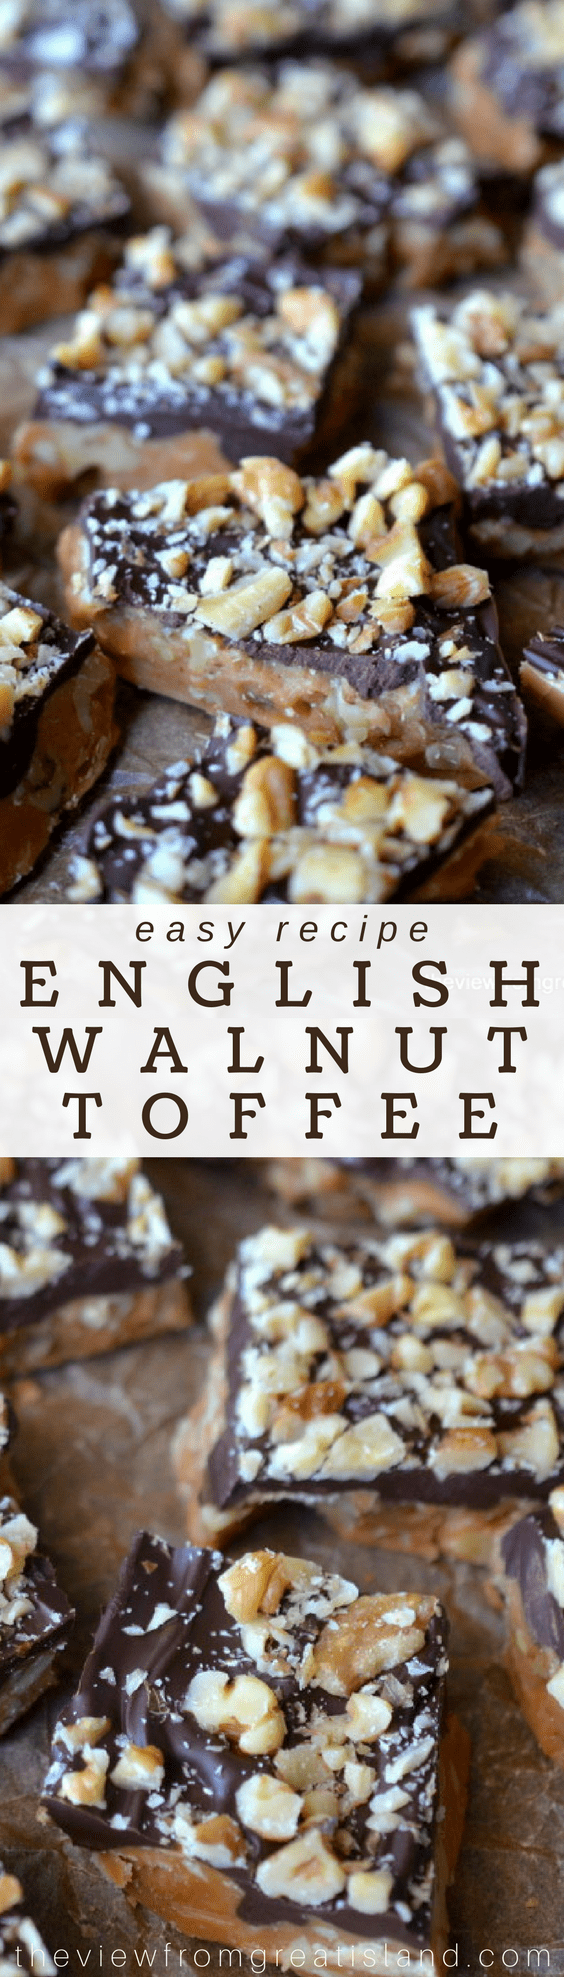 English Walnut Toffee pin